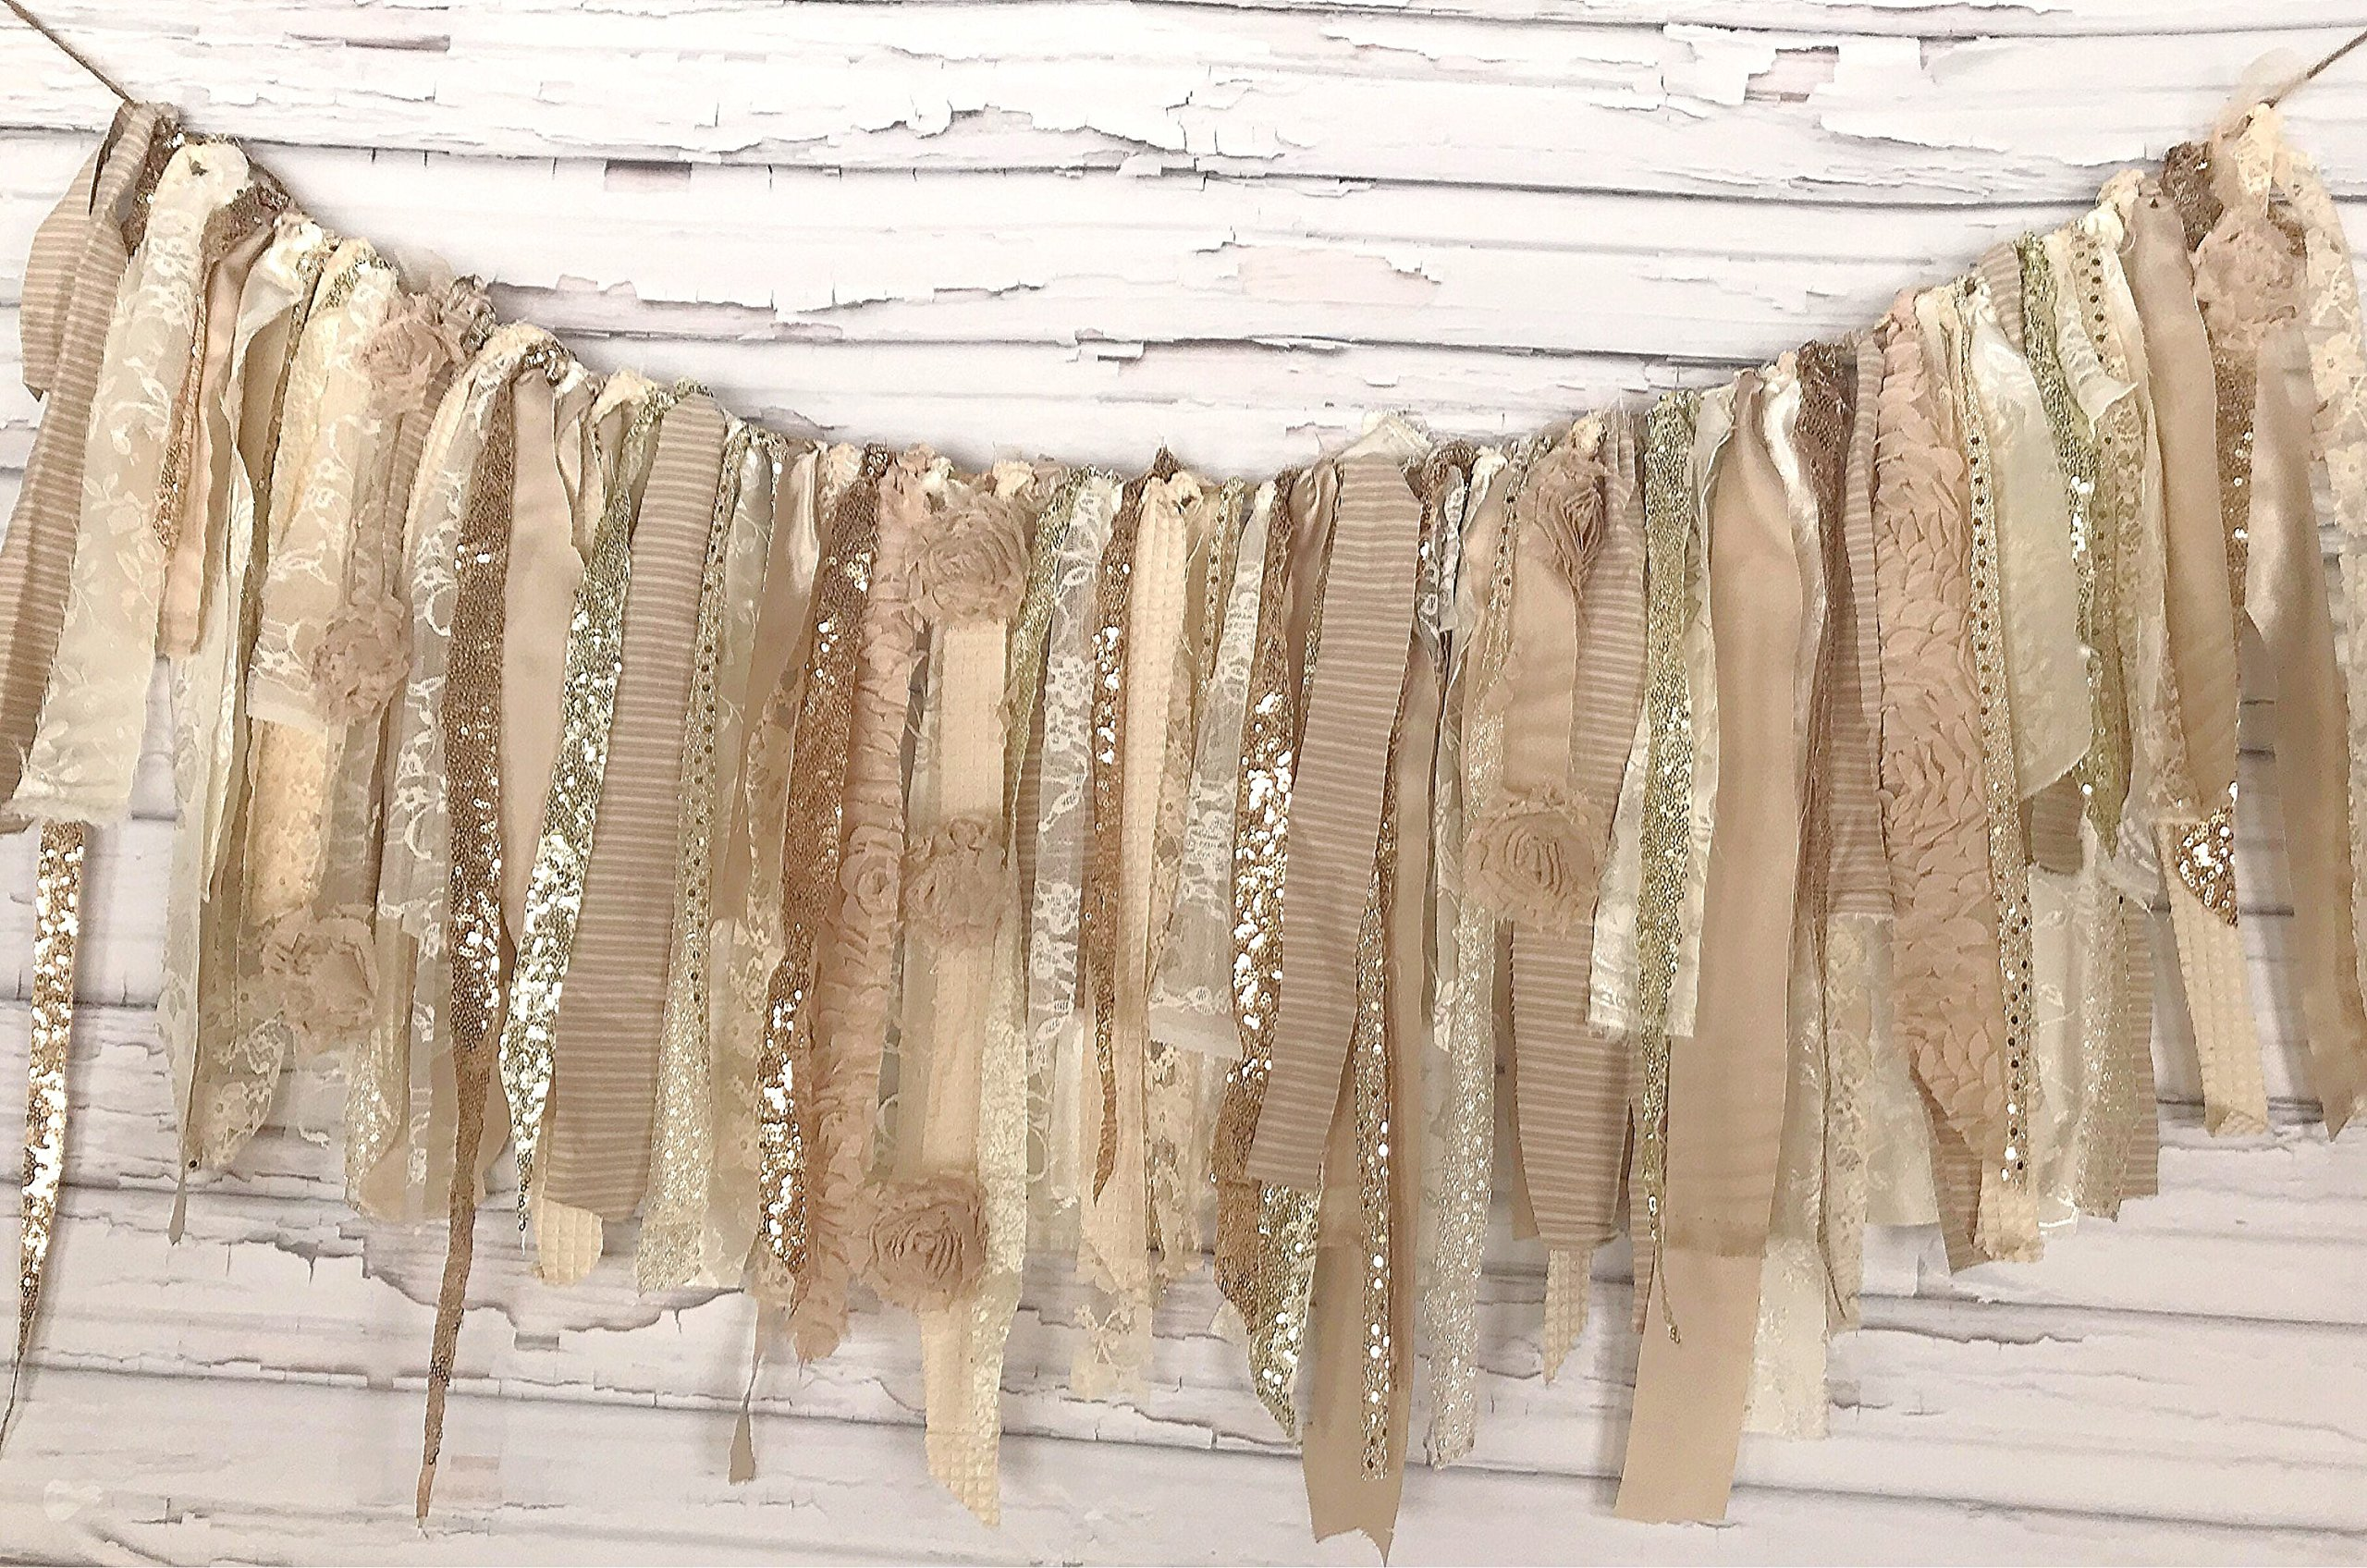 Neutral Gold Glitz Shabby Chic Rag Tie Garland: ~ Photo Shoot ~ Wedding ~ Birthday ~ Nursery ~ Bridal Shower ~ Highchair Banner ~ Gender Reveal Parties ~ Decorations ~ Wall Decor! (5 FEET WIDE) by Modern Rag Quilts (Image #1)